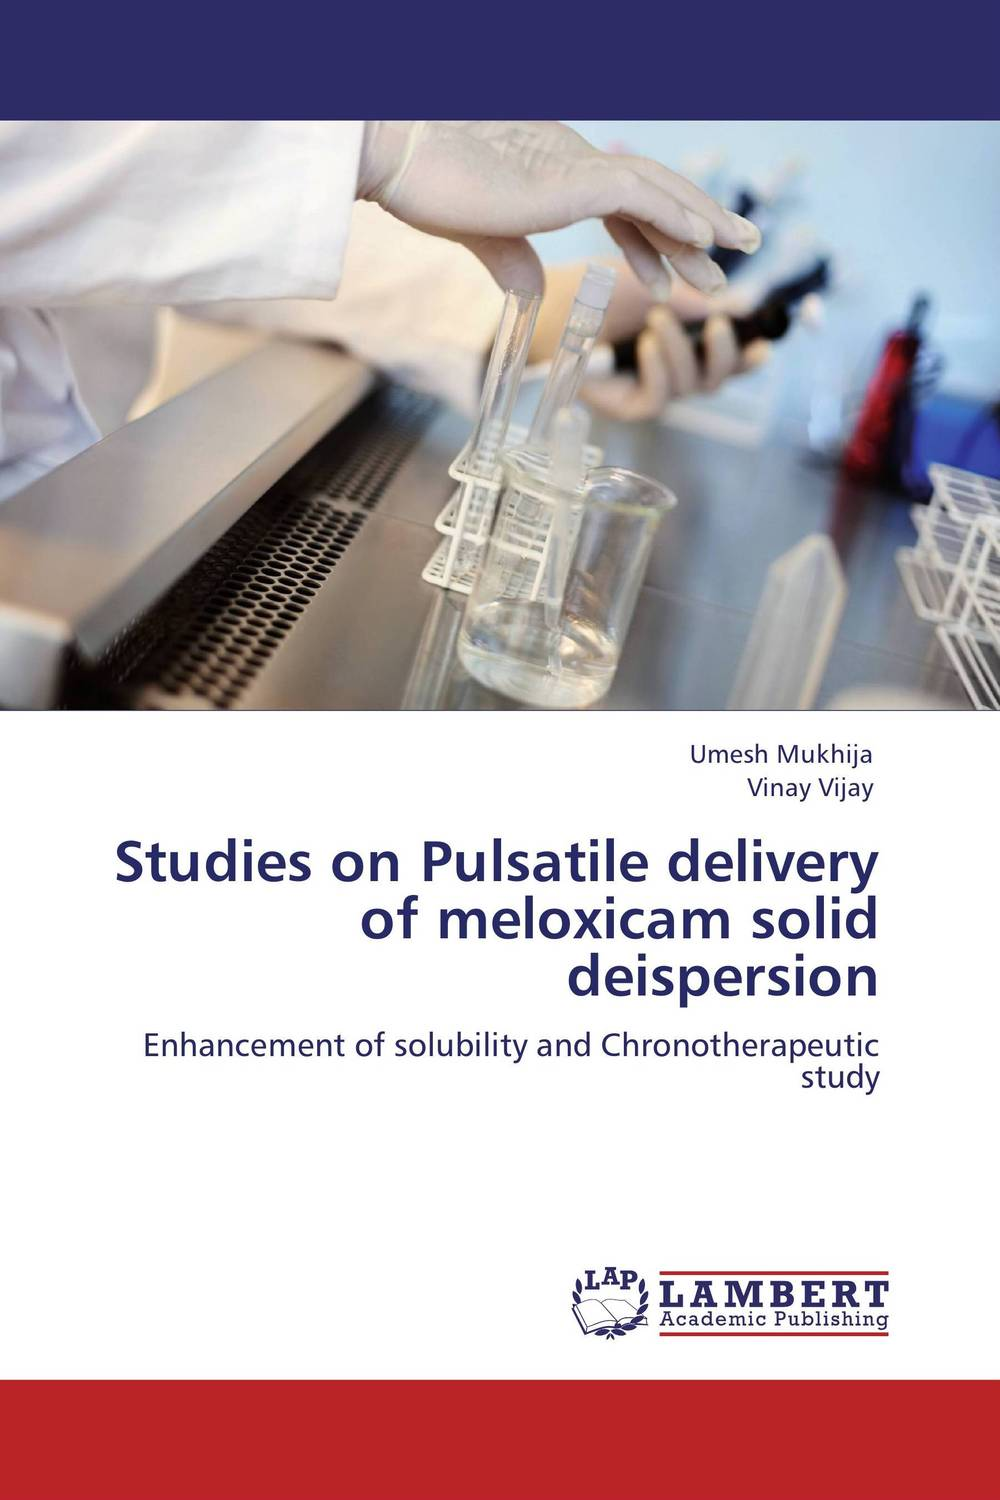 Studies on Pulsatile delivery of meloxicam solid deispersion atamjit singh pal paramjit kaur khinda and amarjit singh gill local drug delivery from concept to clinical applications